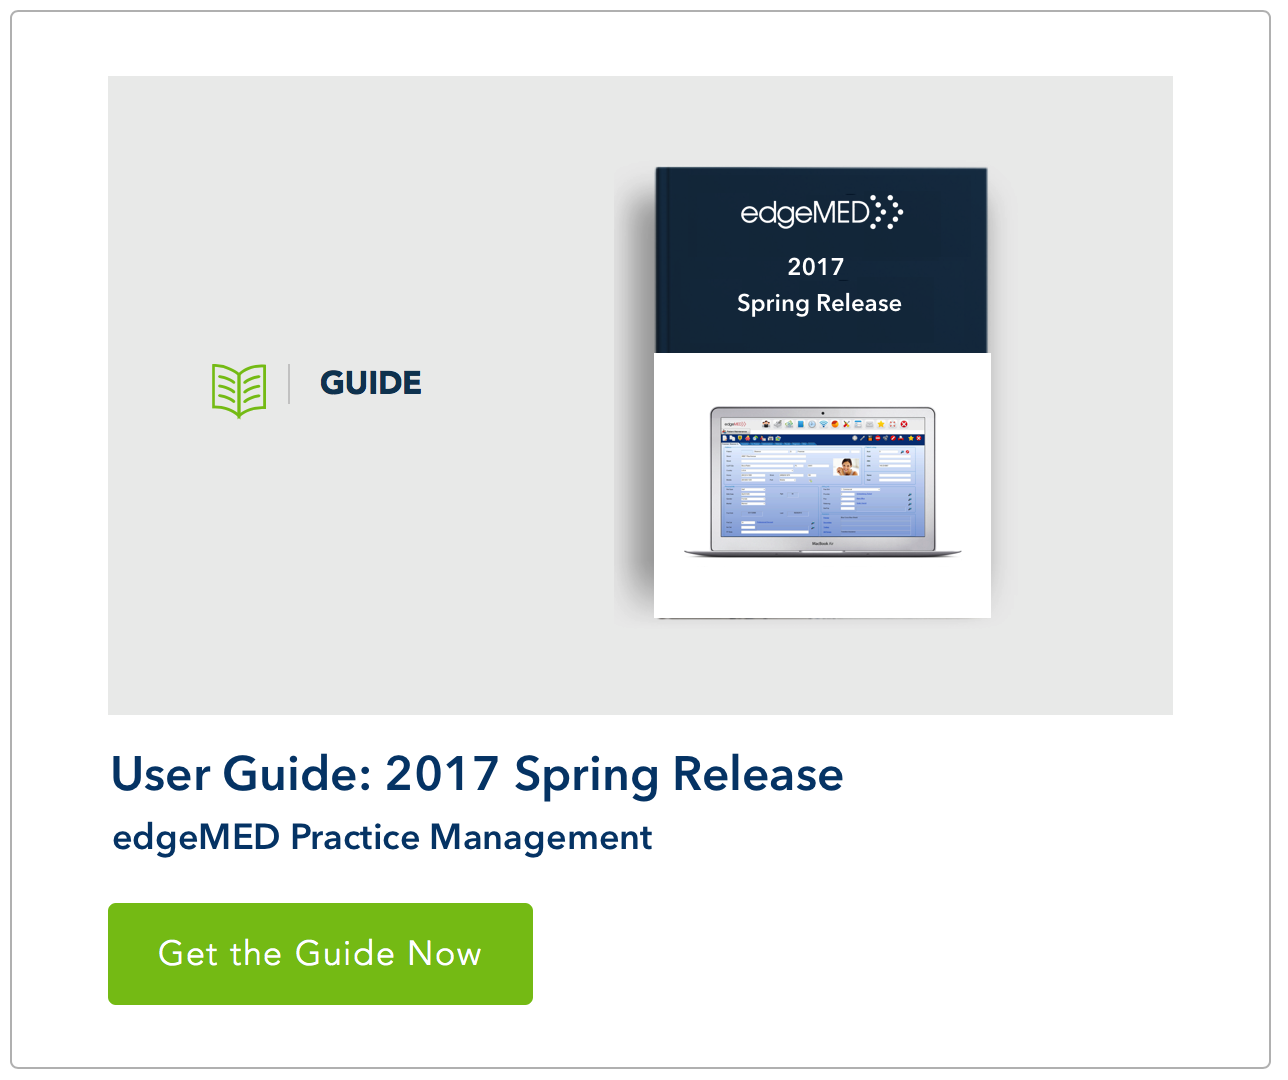 edgeMED Spring 2017 Release Guide